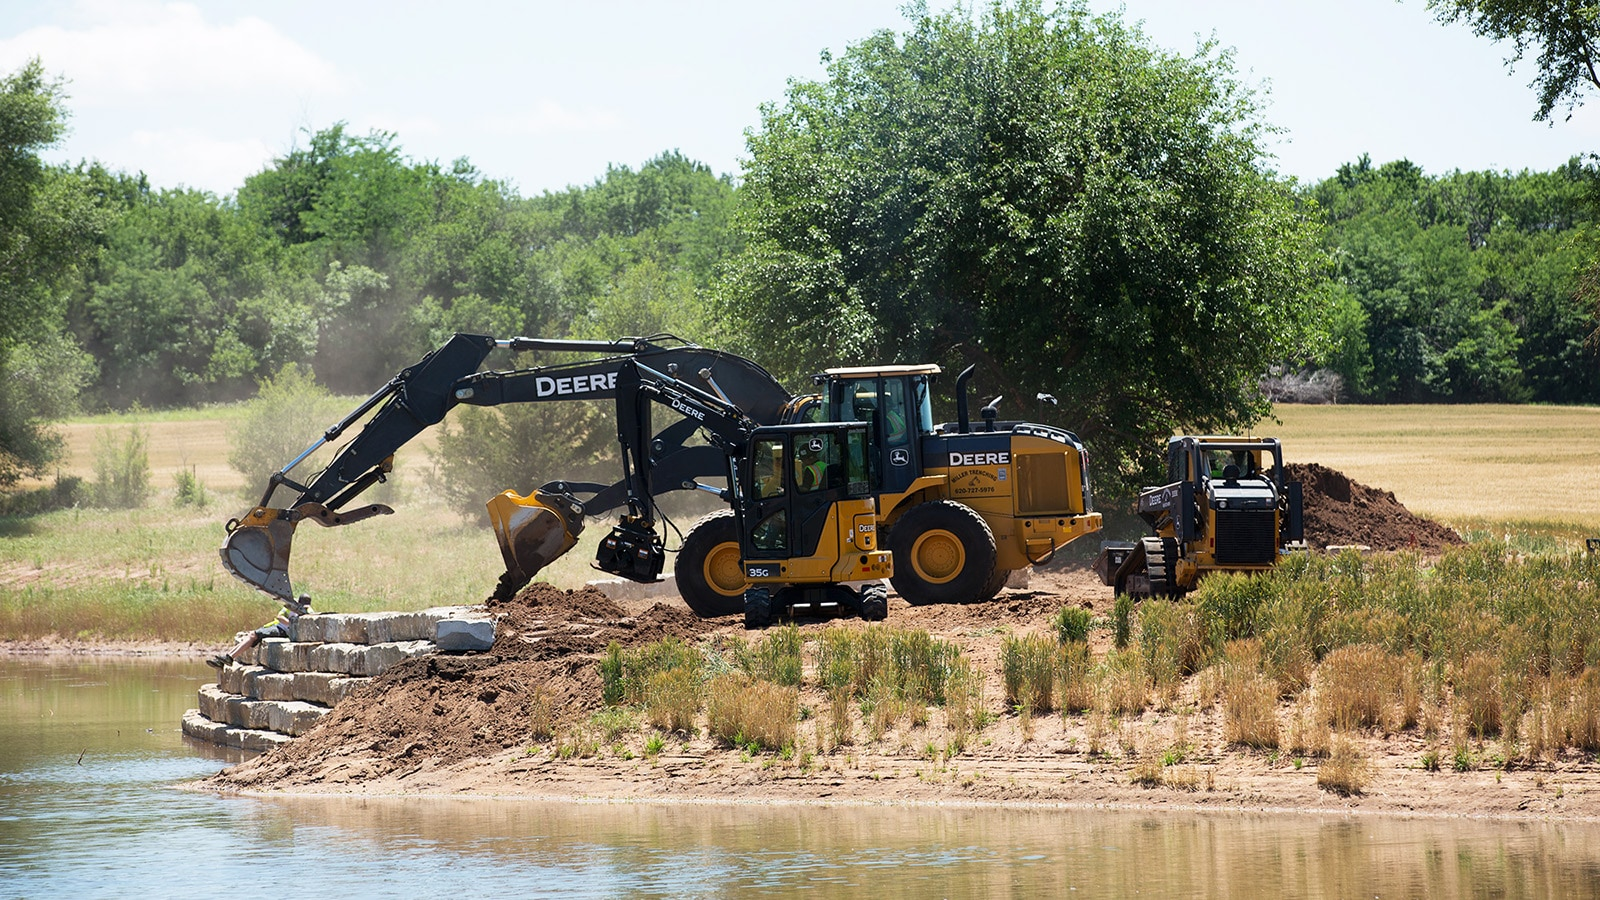 Wheel loader, excavators and compact track loaders work on a retaining wall by a pond.